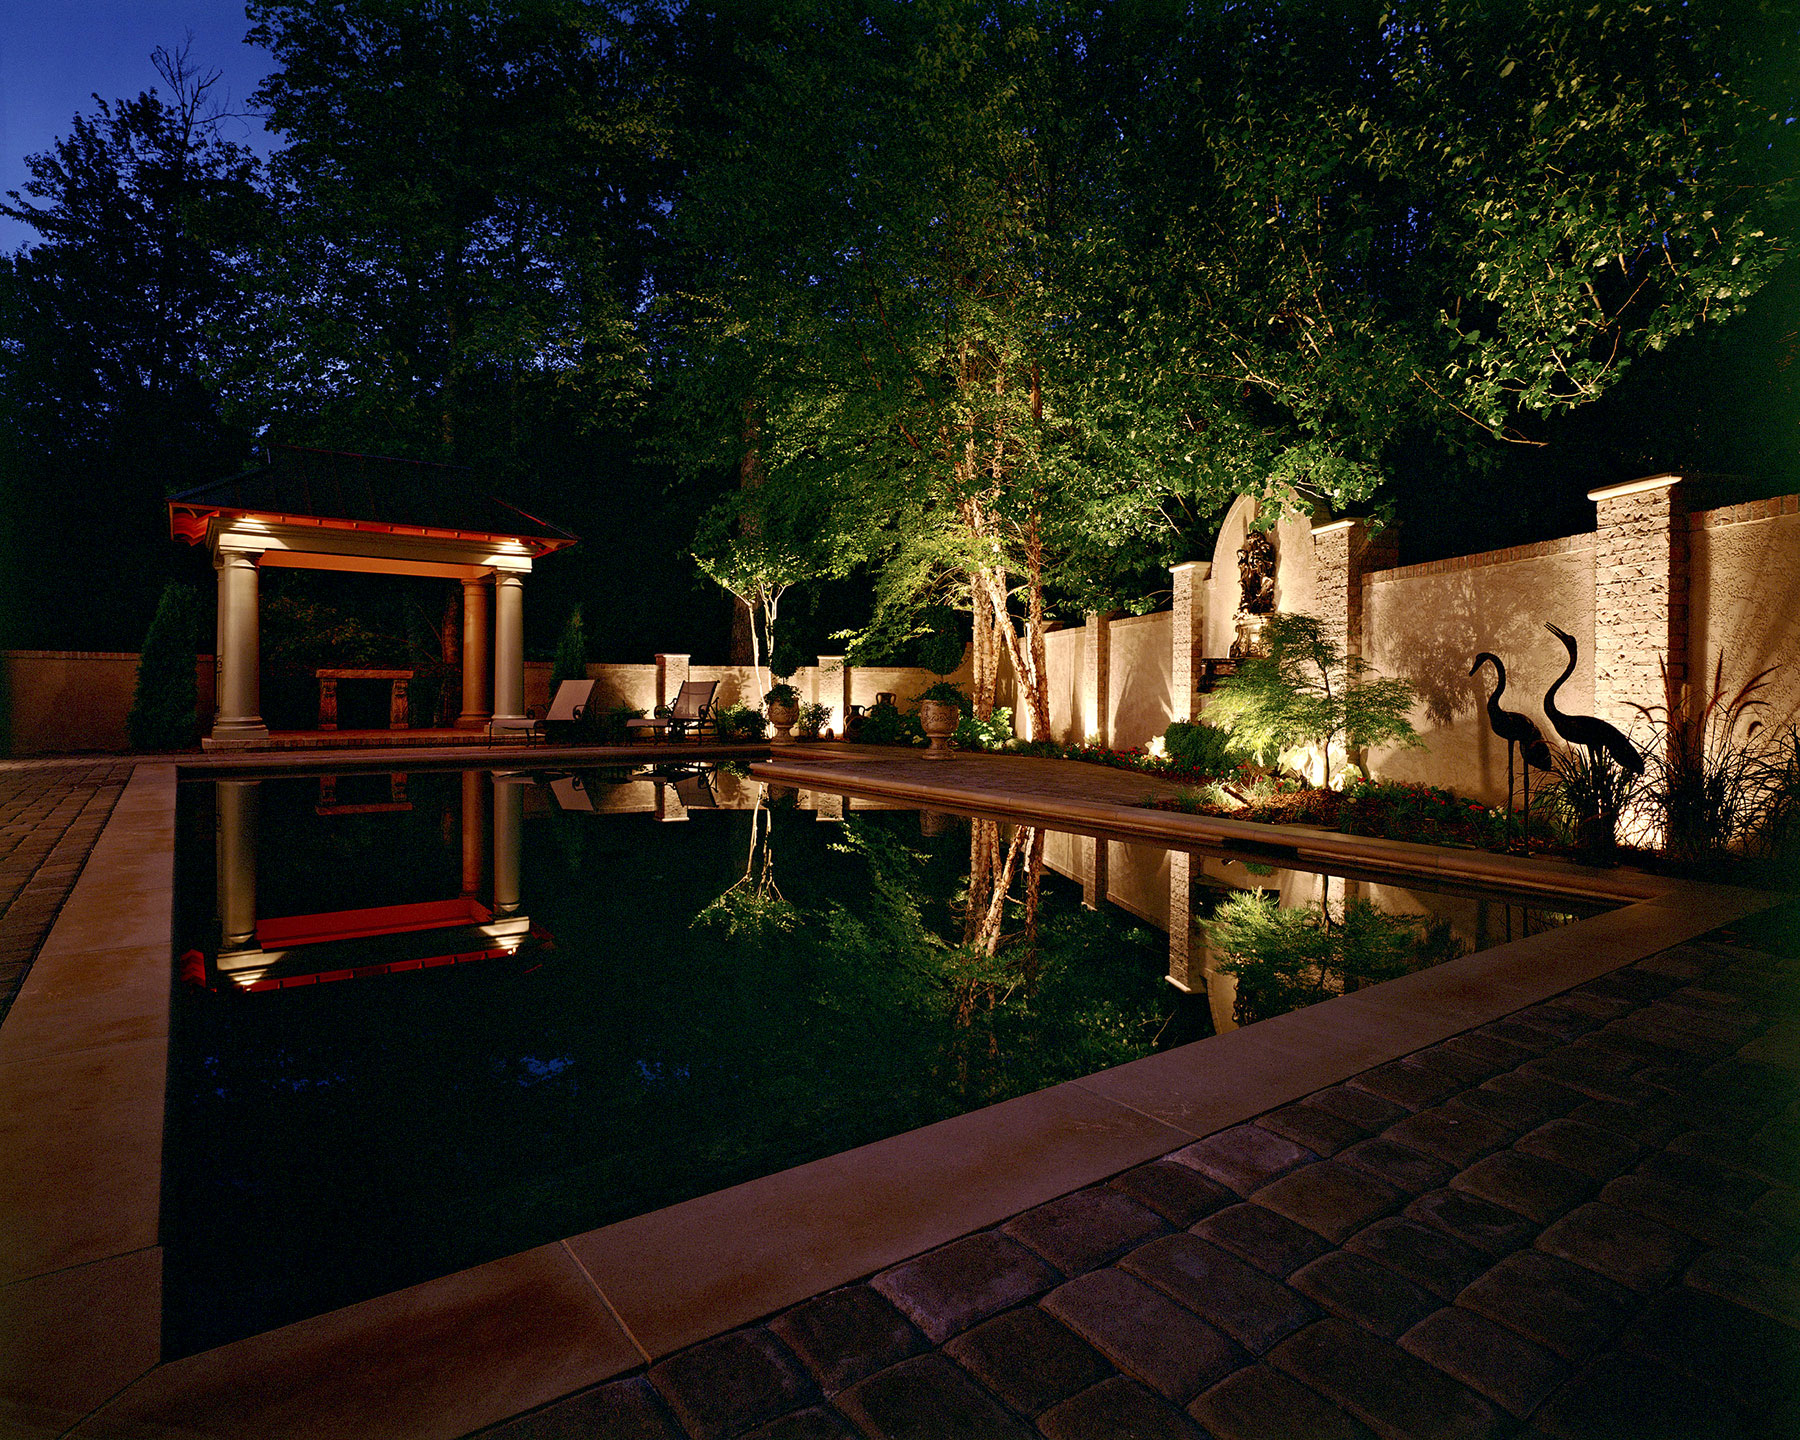 Pool and surrounding area lighting